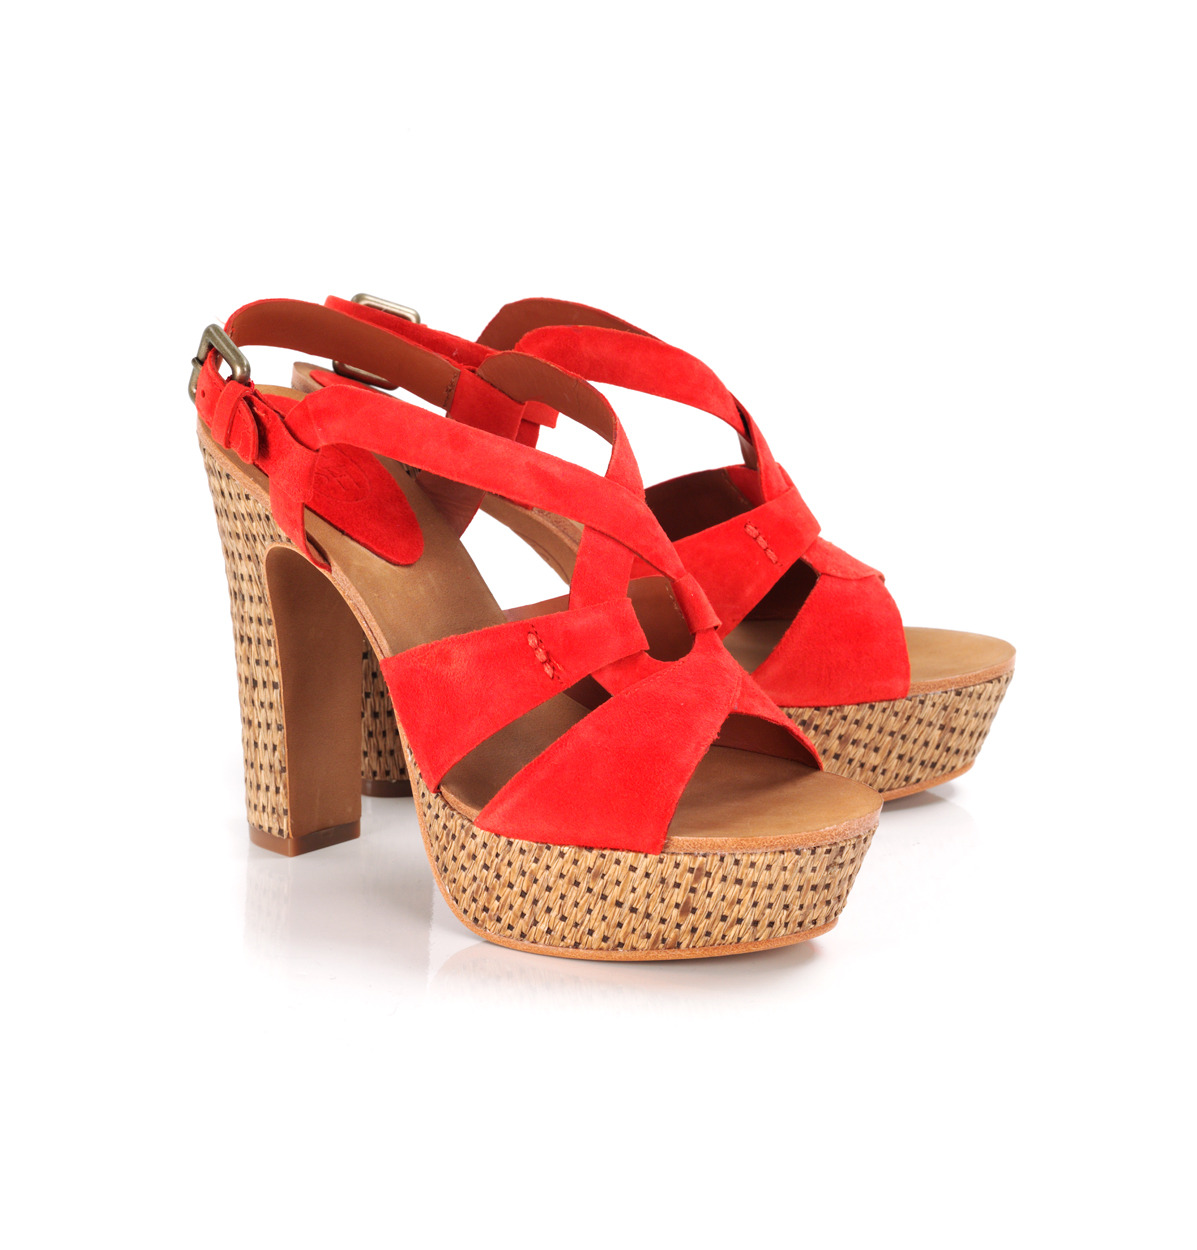 Delirium Woven Sandals - predominant colour: bright orange; material: patent; heel height: high; ankle detail: ankle strap; heel: platform; toe: open toe/peeptoe; style: strappy; finish: patent